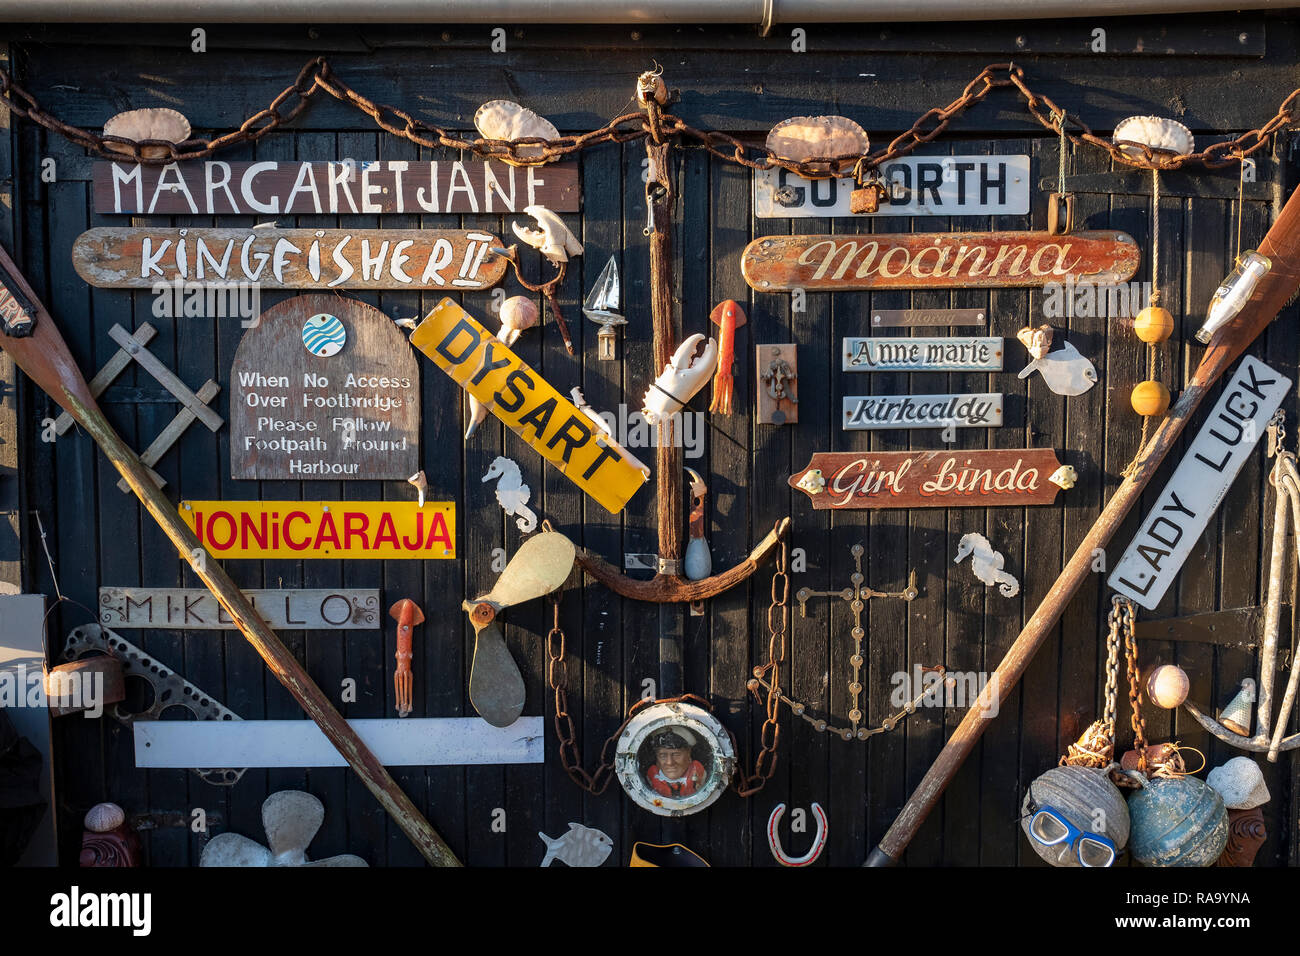 Old boat nameplates attached to a door near the harbourmasters house in Dysart, near Kirkcaldy, Scotland. - Stock Image